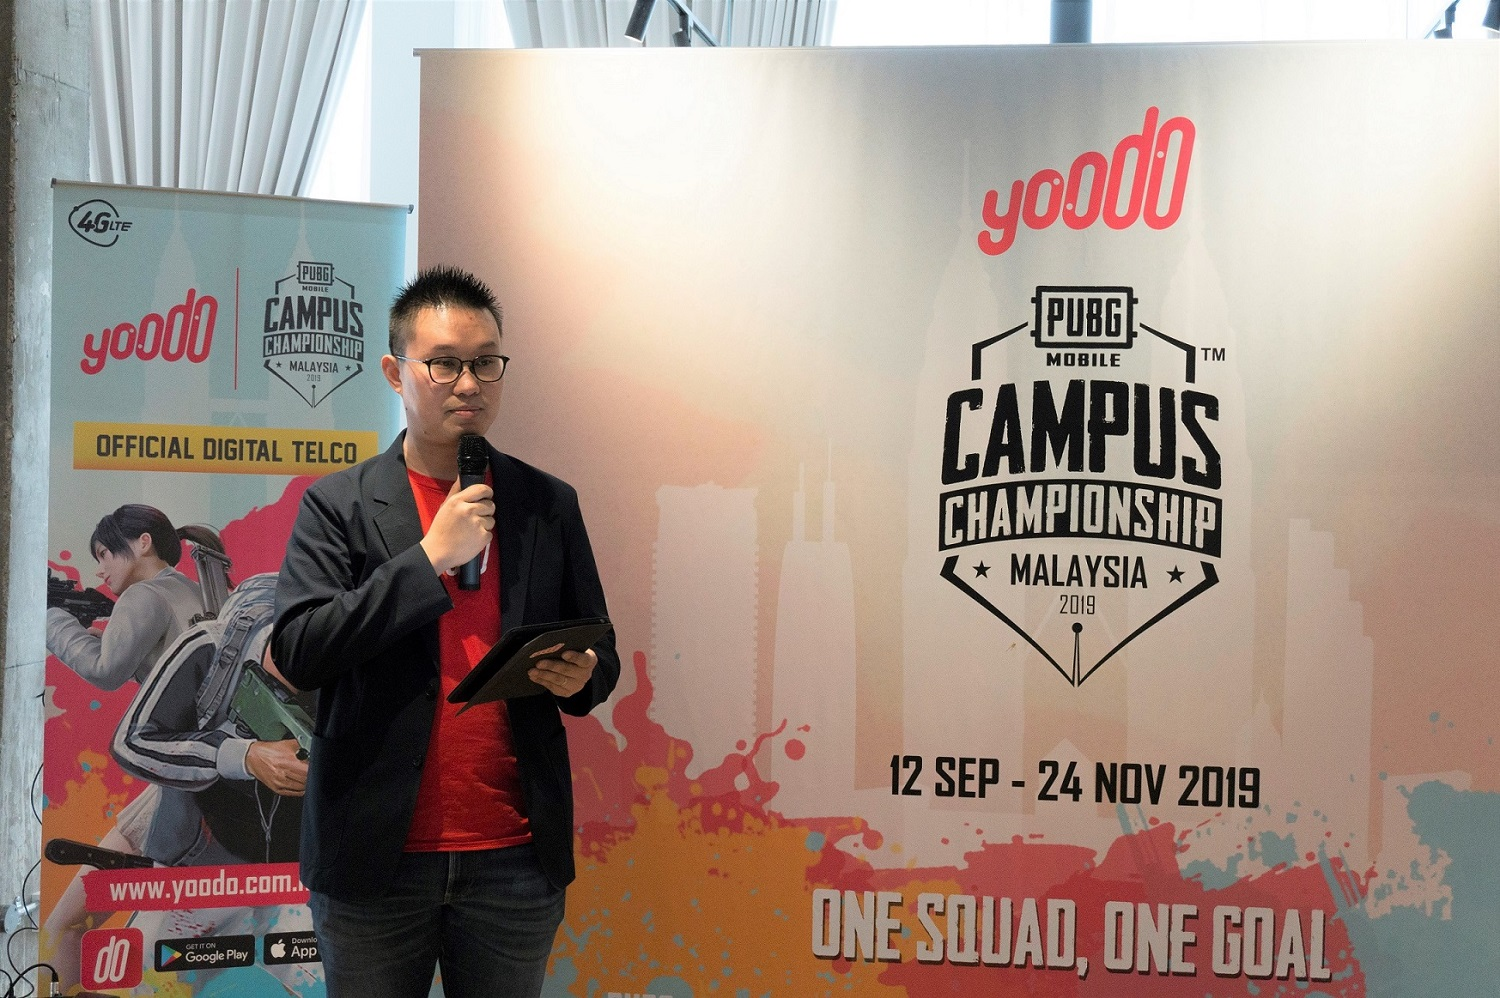 Yoodo Announces Malaysia's First Official PUBG MOBILE Tournament for Universities